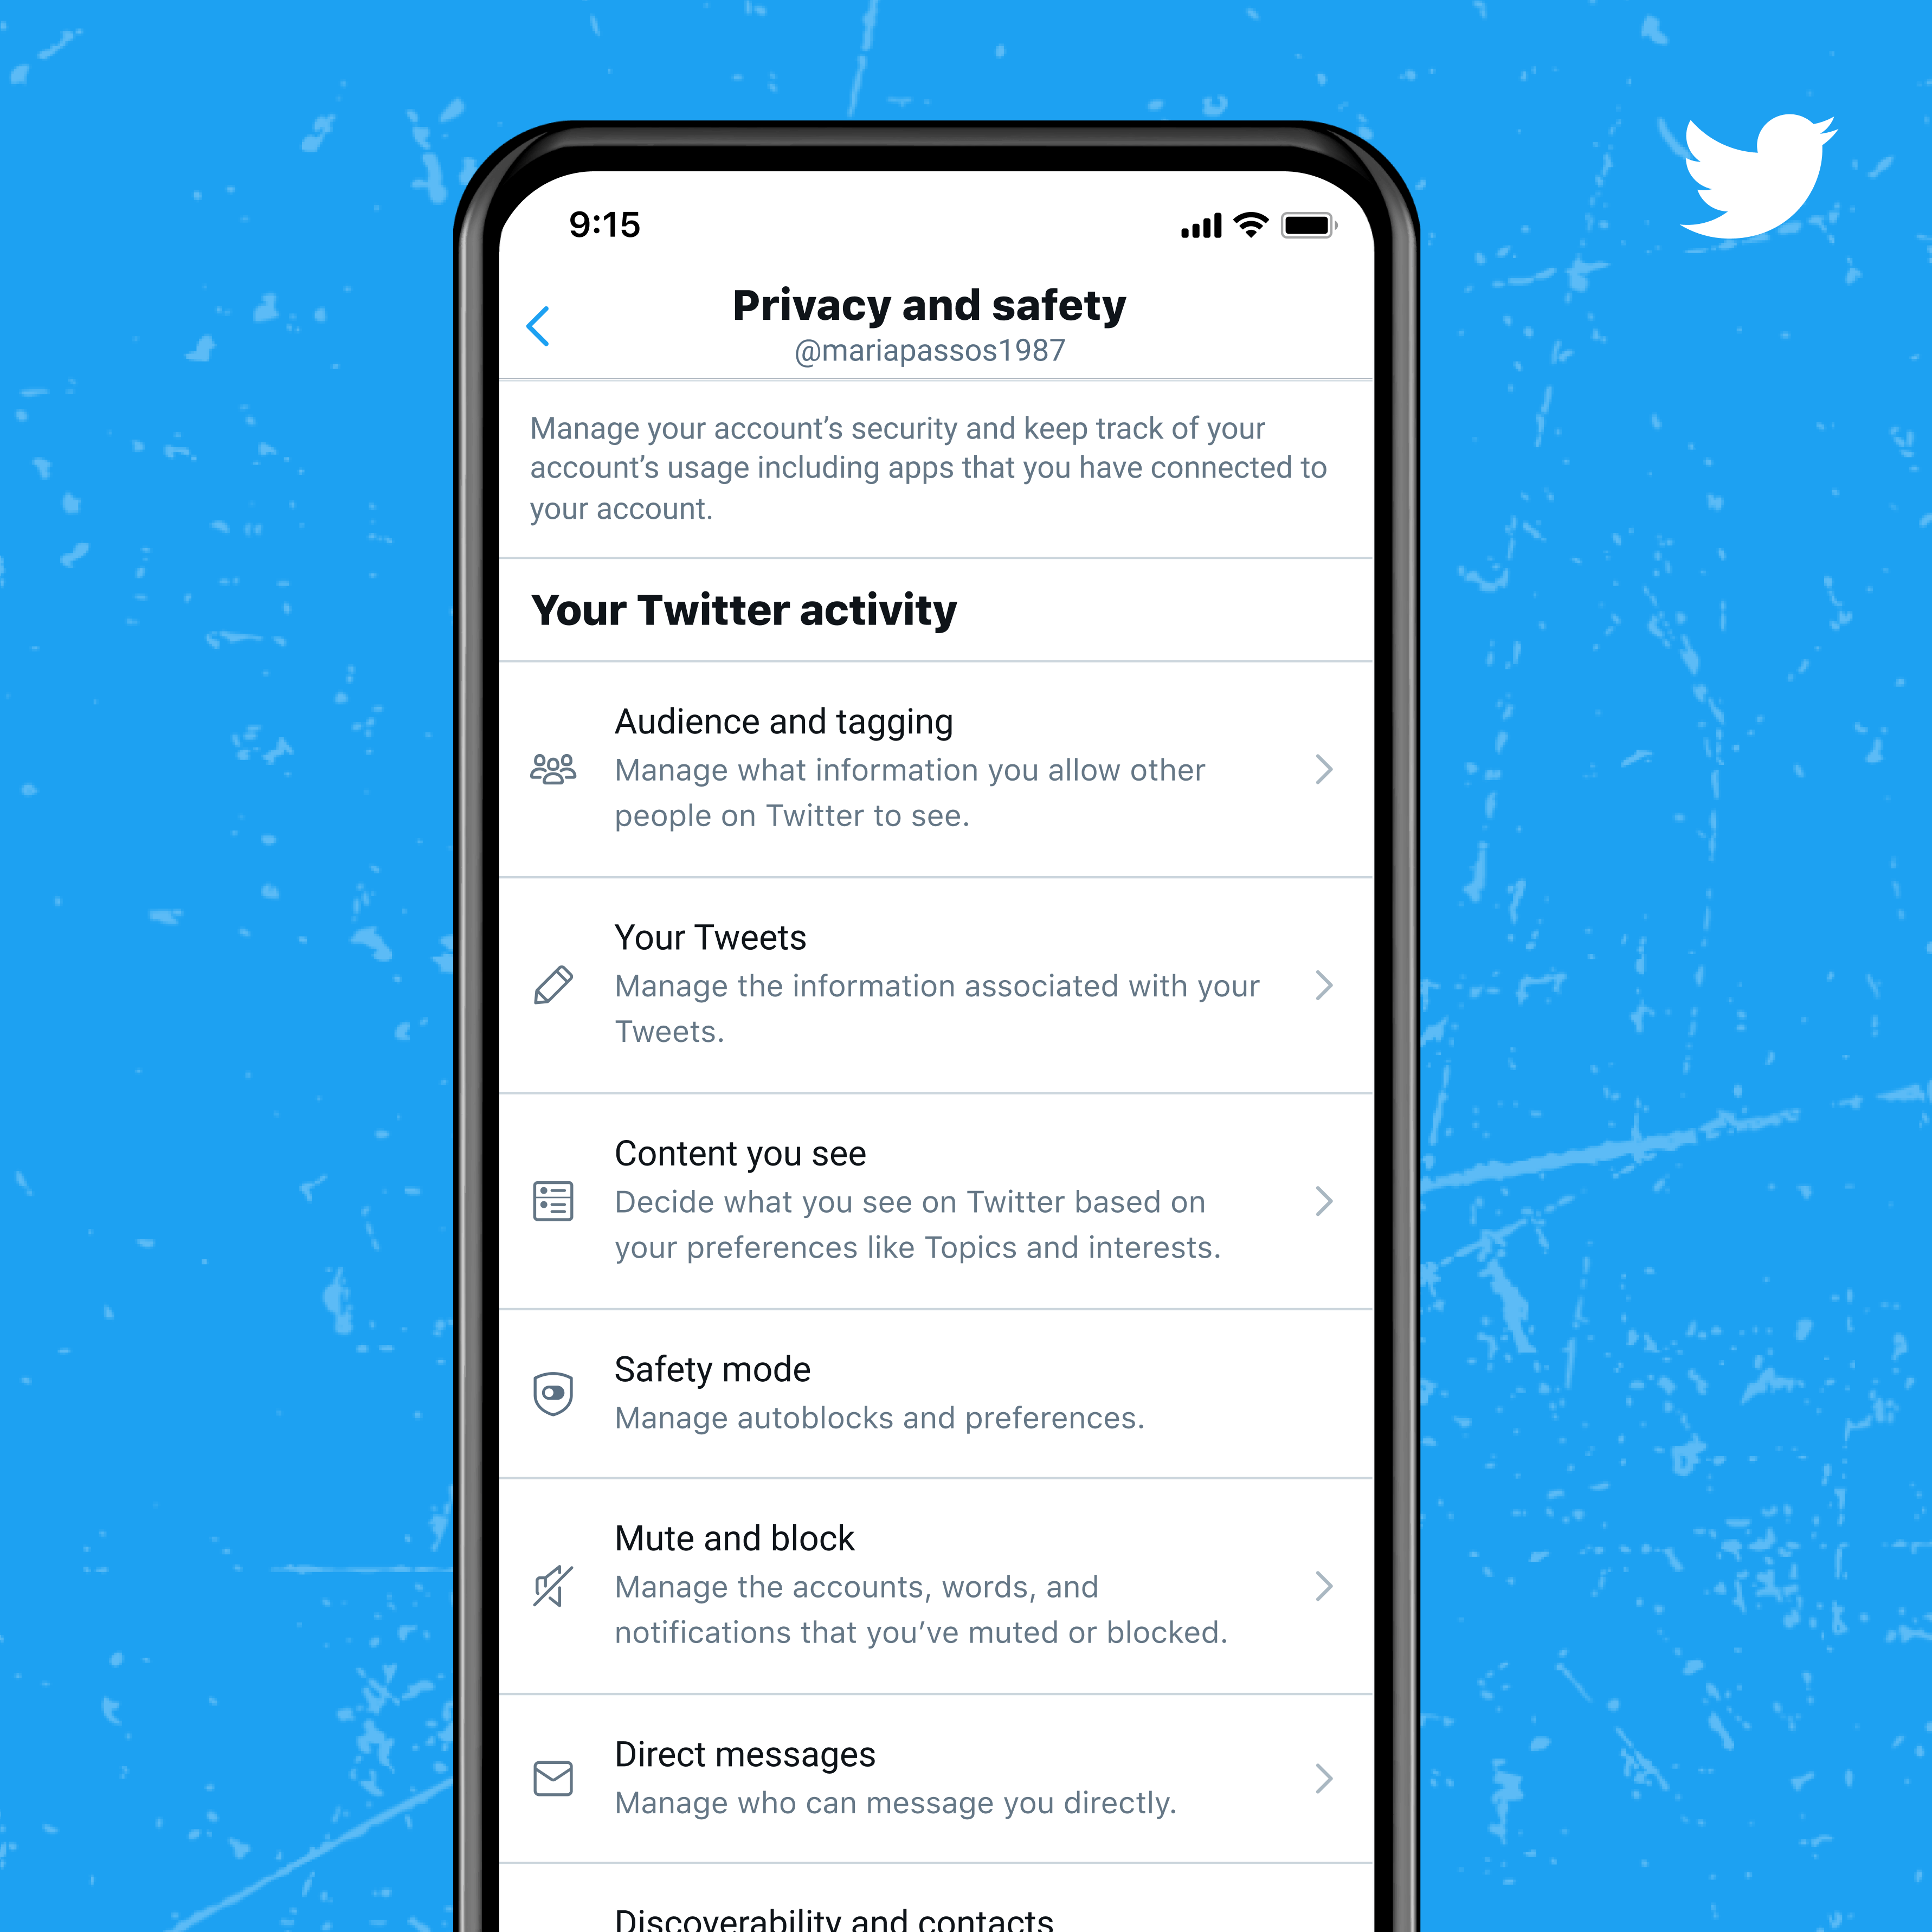 Apple has delayed its controversial child safety tracking features due to privacy concerns, while Twitter introduces Safety Mode to protect users.